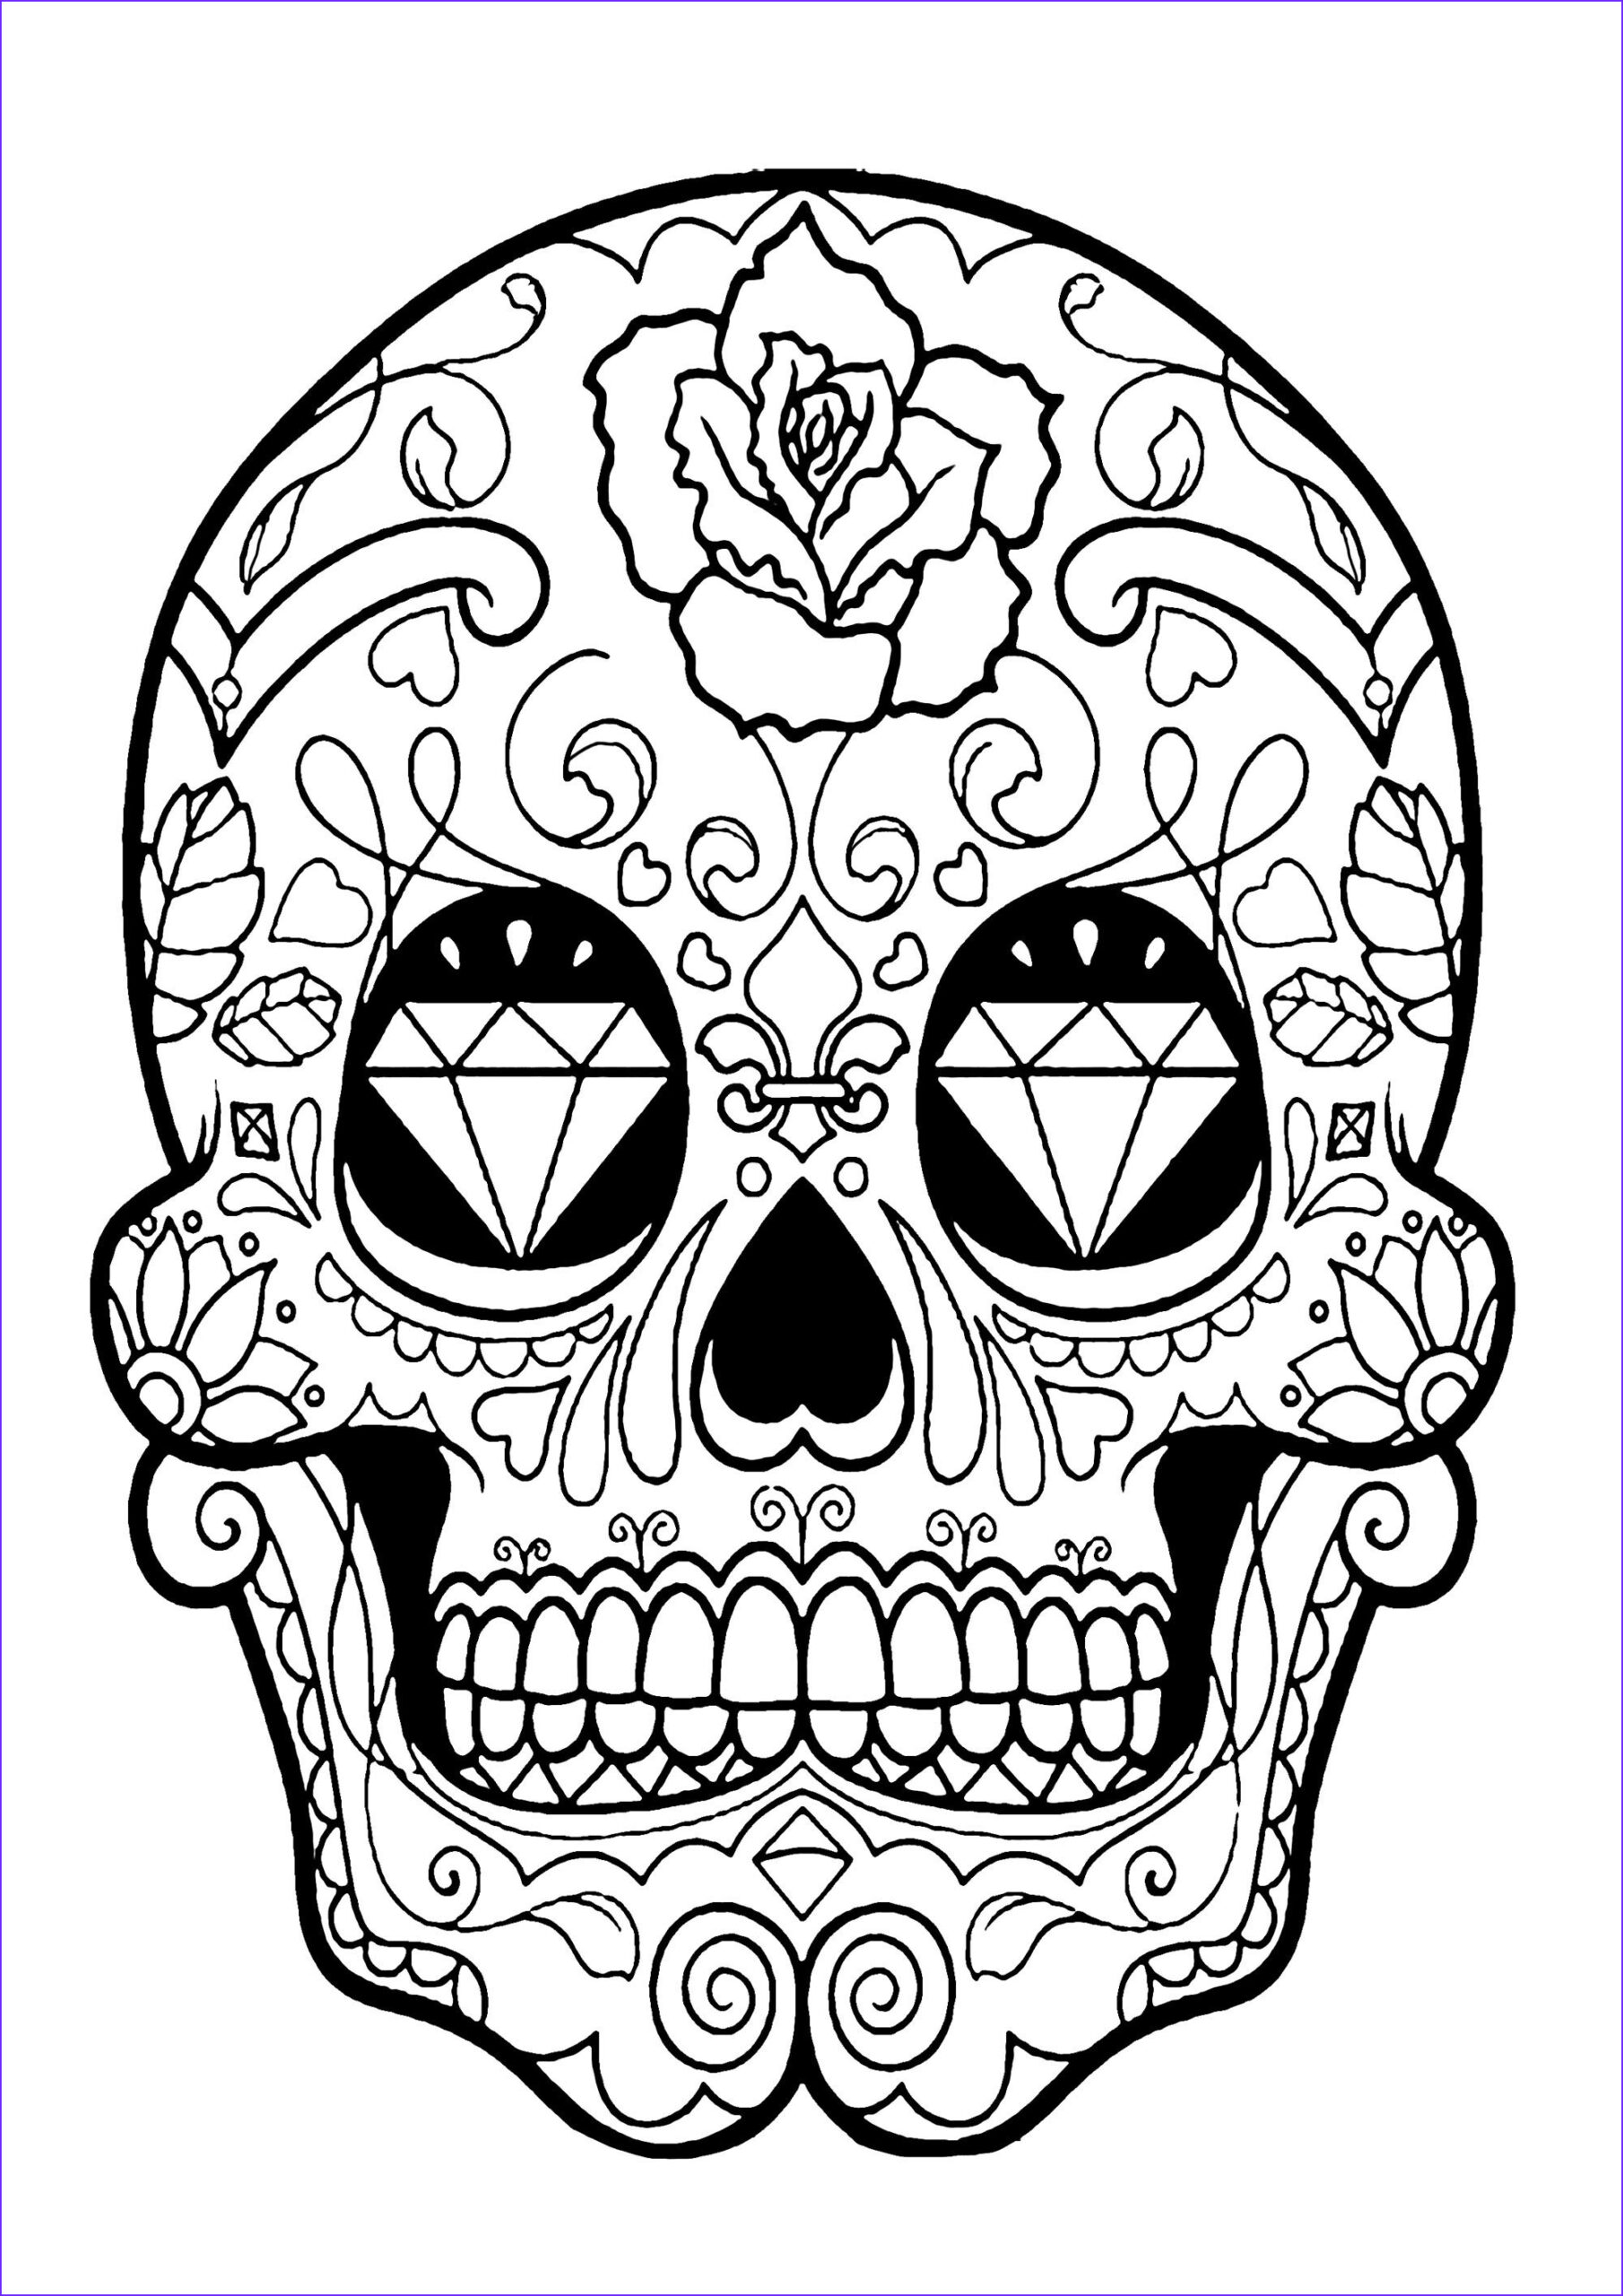 Dia De Los Muertos Coloring Sheets Awesome Photos Skull Coloring Pages for Adults